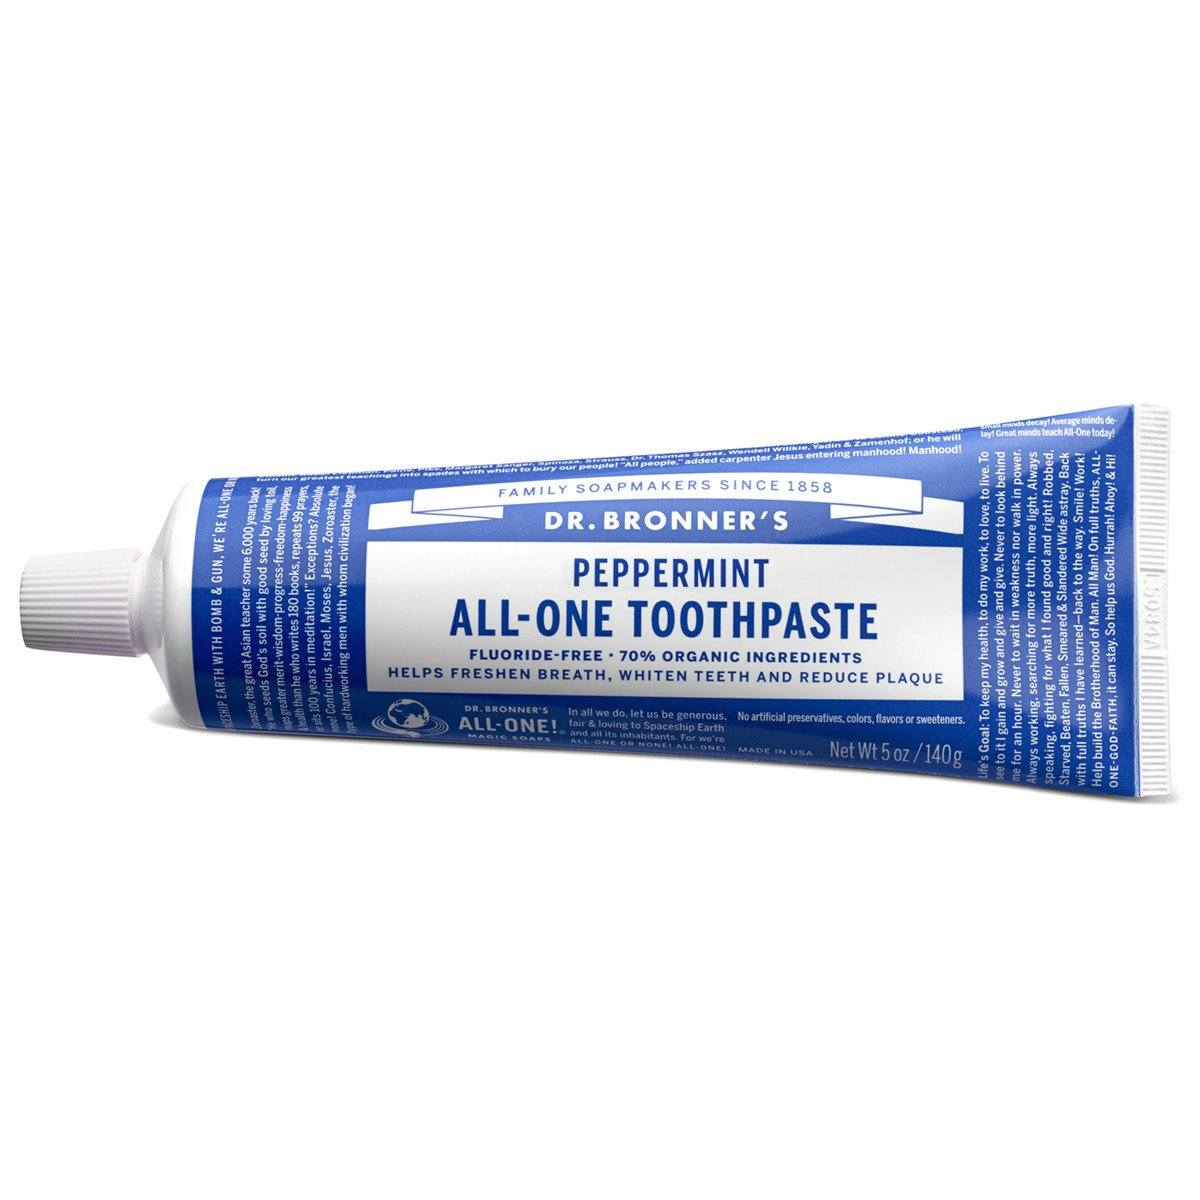 Personal Care - Dr. Bronner's - Peppermint Toothpaste, 140g